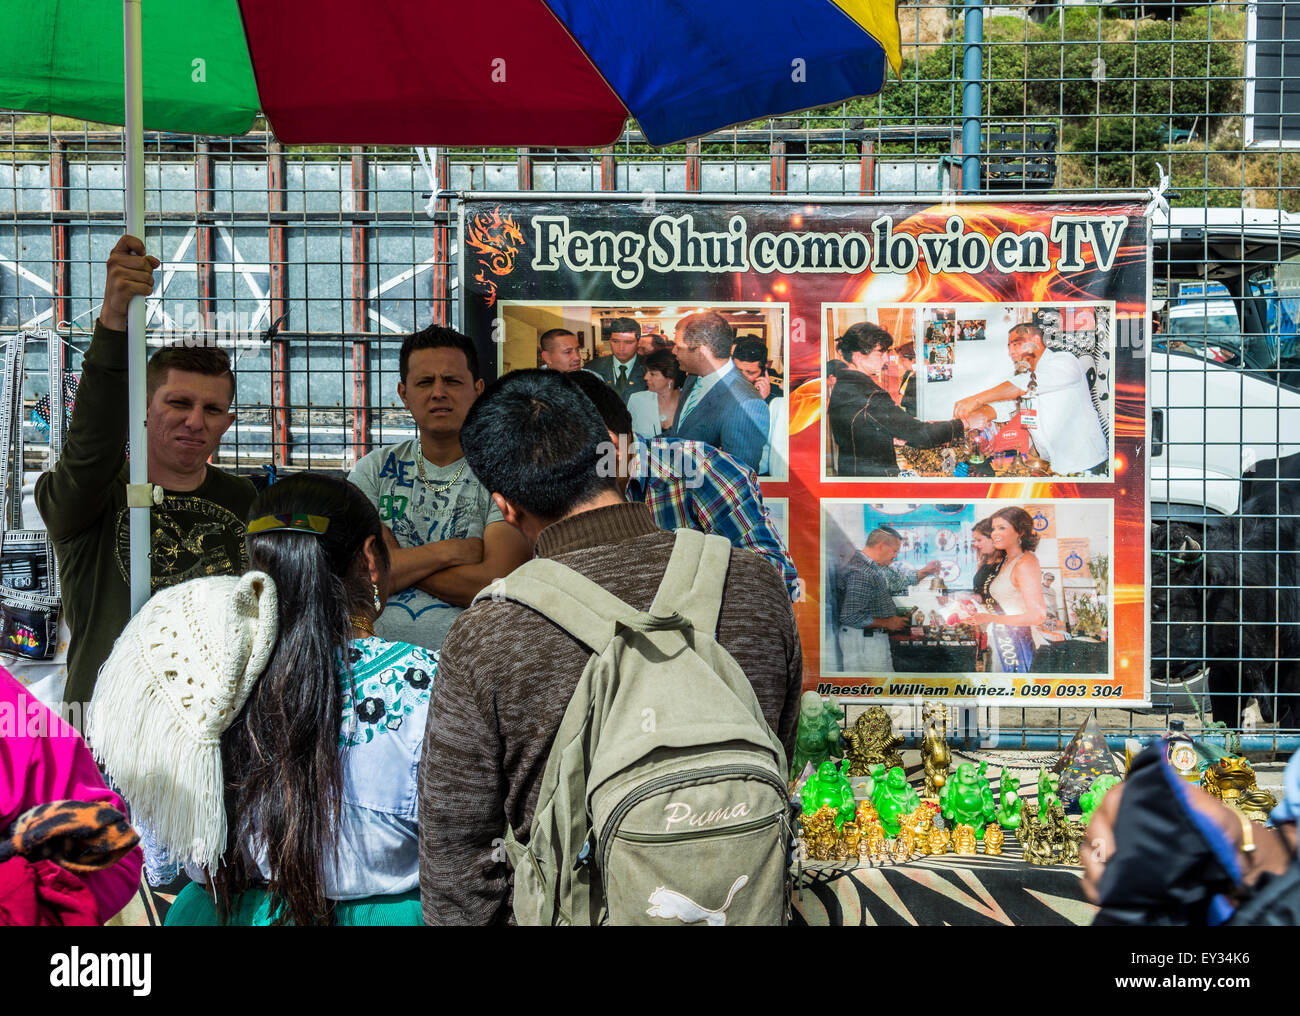 A stand selling Feng Shui gadgets at local market. Otavalo, Ecuador. - Stock Image